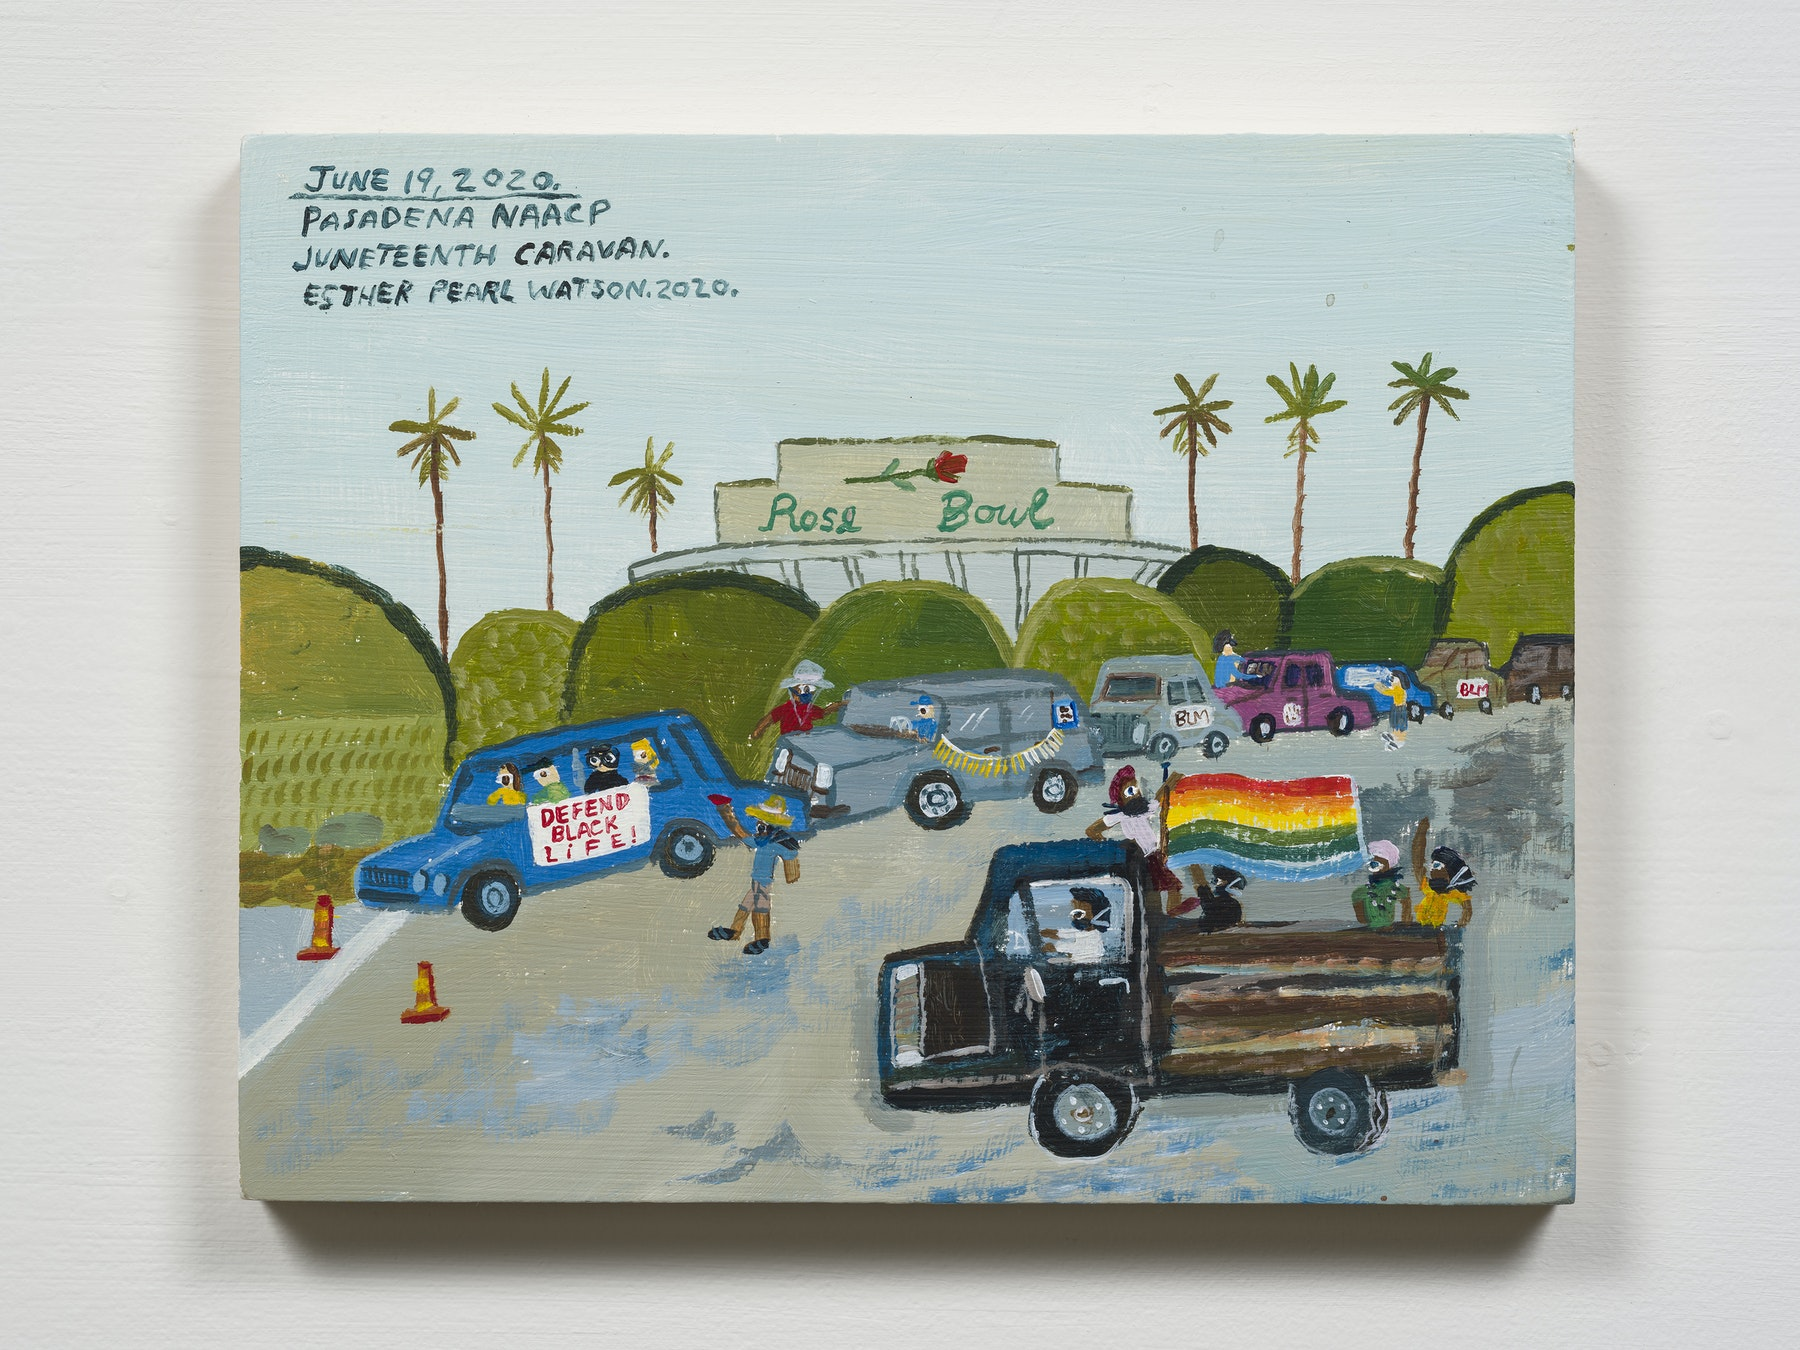 """Esther Pearl Watson """"June 19, Rose Bowl Juneteenth Caravan,"""" 2020 Acrylic with pencil on panel 8 x 10"""" [HxW] (20.32 x 25.4 cm) Inventory #EPW298 Courtesy of the artist and Vielmetter Los Angeles Photo credit: Jeff Mclane Collection of Taymour Grahne; New York, NY, USA"""